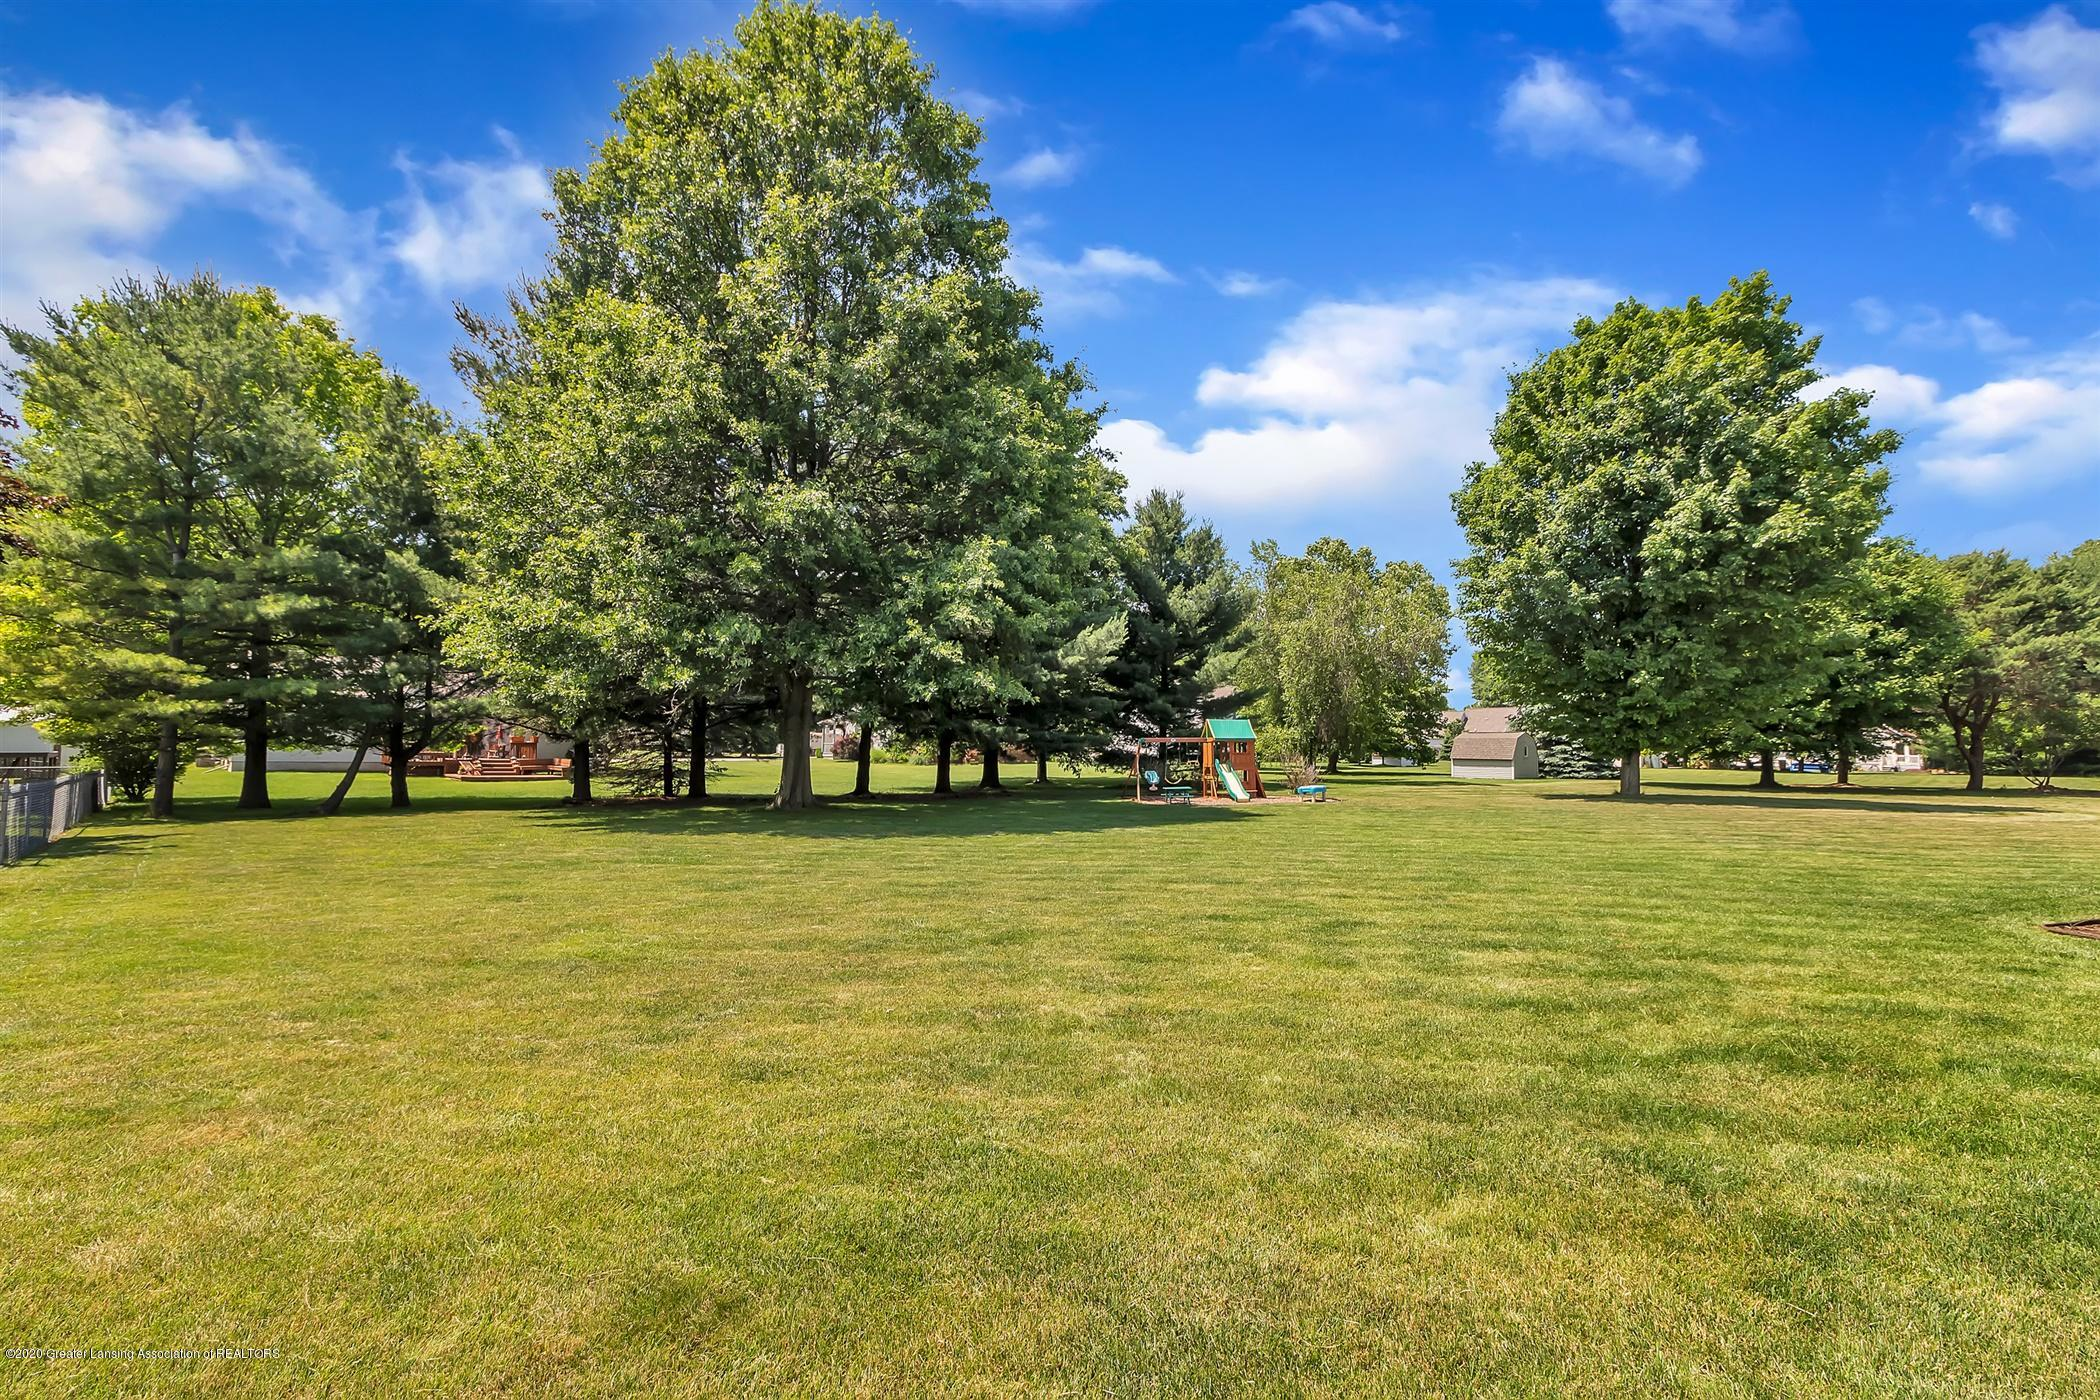 2945 Whistlewood Way - 33-2945Whistlewood-WindowStill-Real - 33